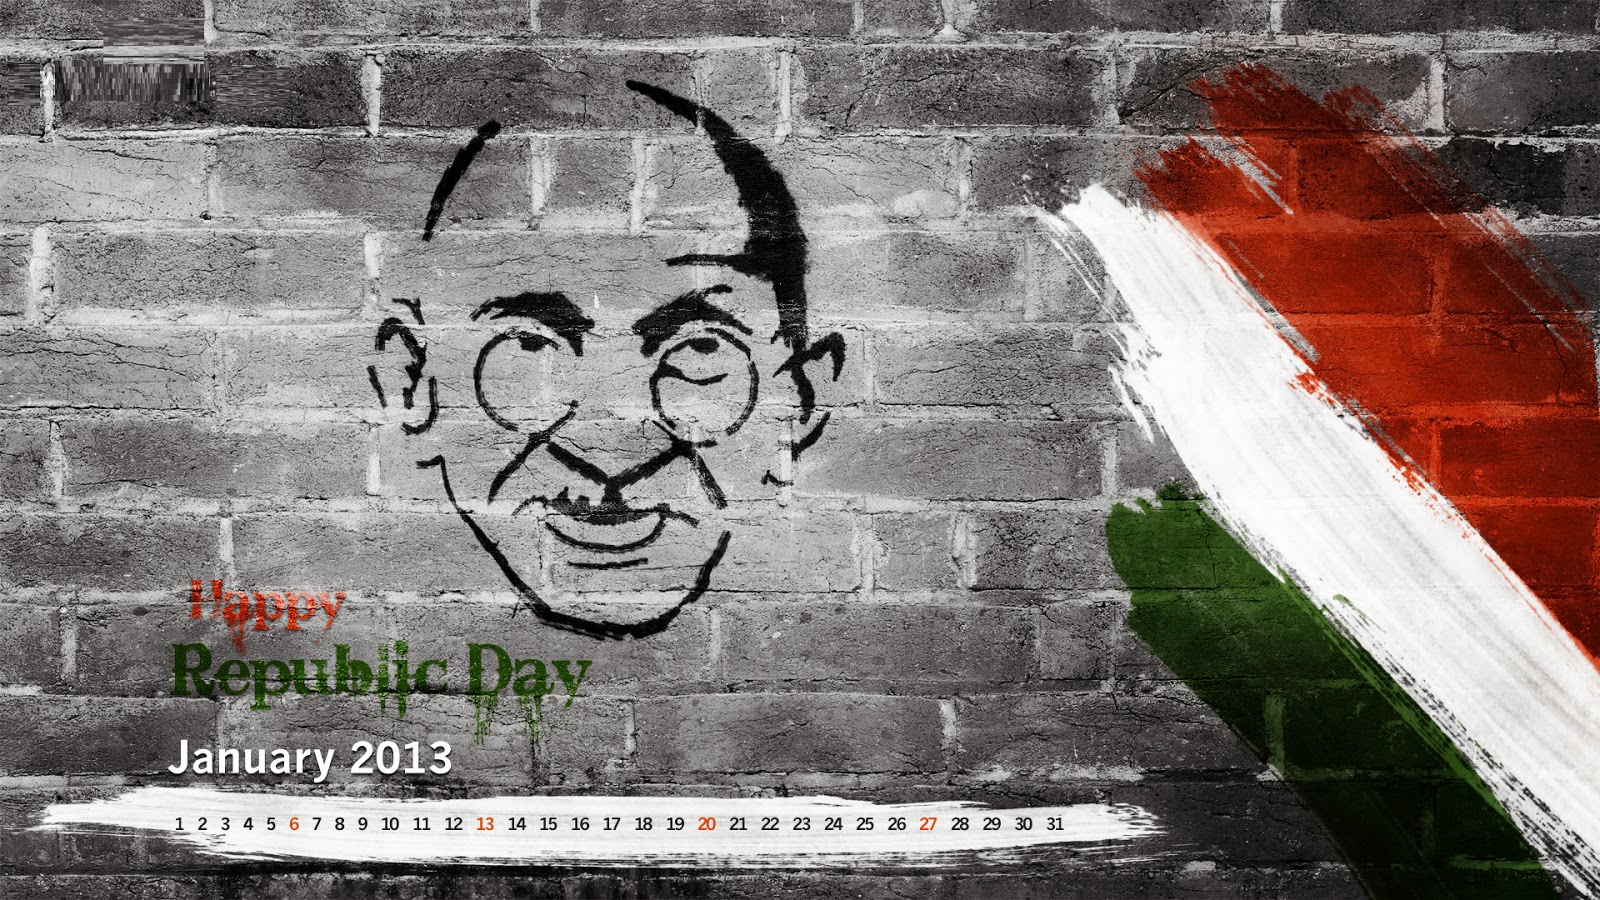 Cute Art for Republic Day With Gandhiji on Wall images photos pics